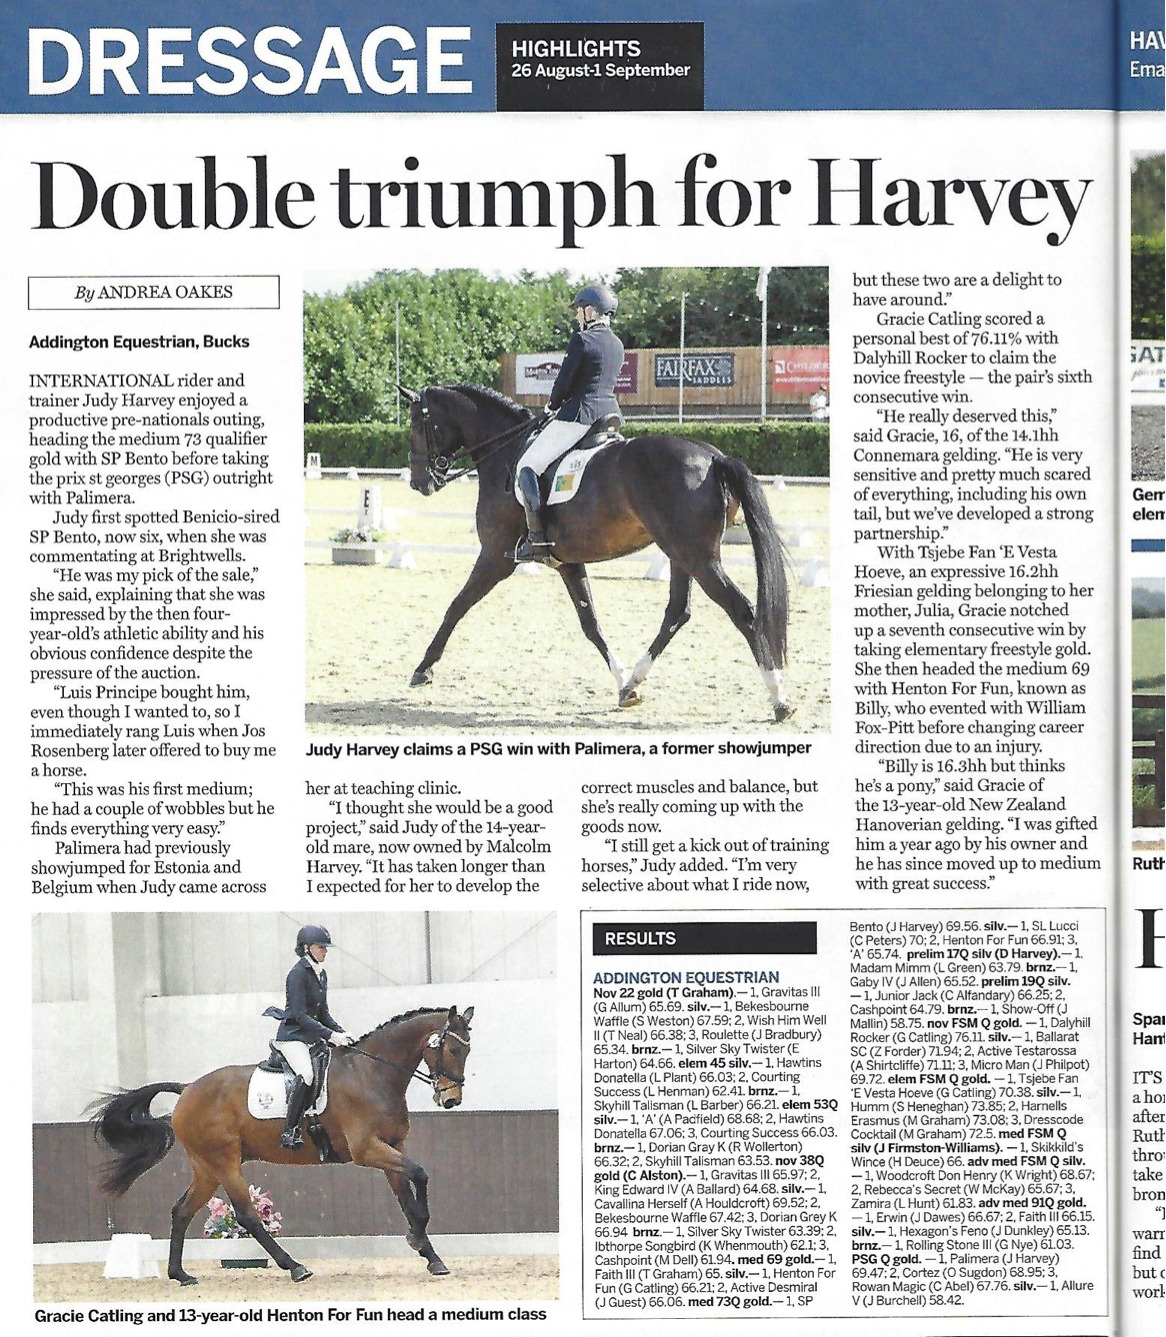 Have you seen 2TheBarn ambassador Gracie Catling was mentioned in the Horse & Hound following her success at Addington! An incredibly talented and humble rider, Gracie is proving her consistency with consecutive wins on horses of all breeds, shapes & sizes! Go Gracie!